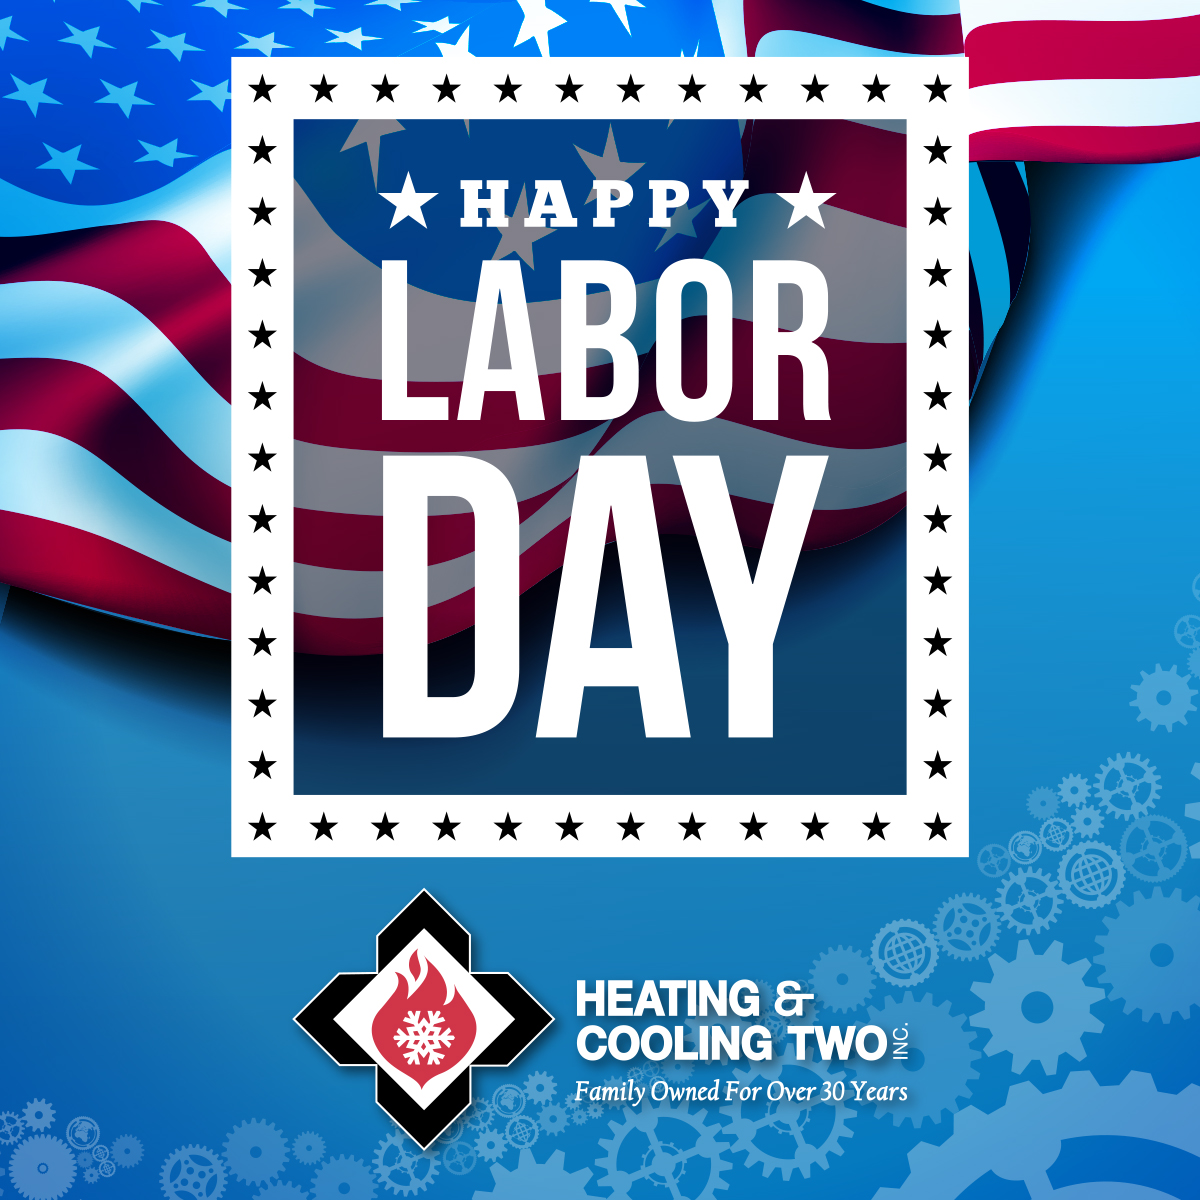 Happy Labor Day, Heating & Cooling Two, HeatCool2